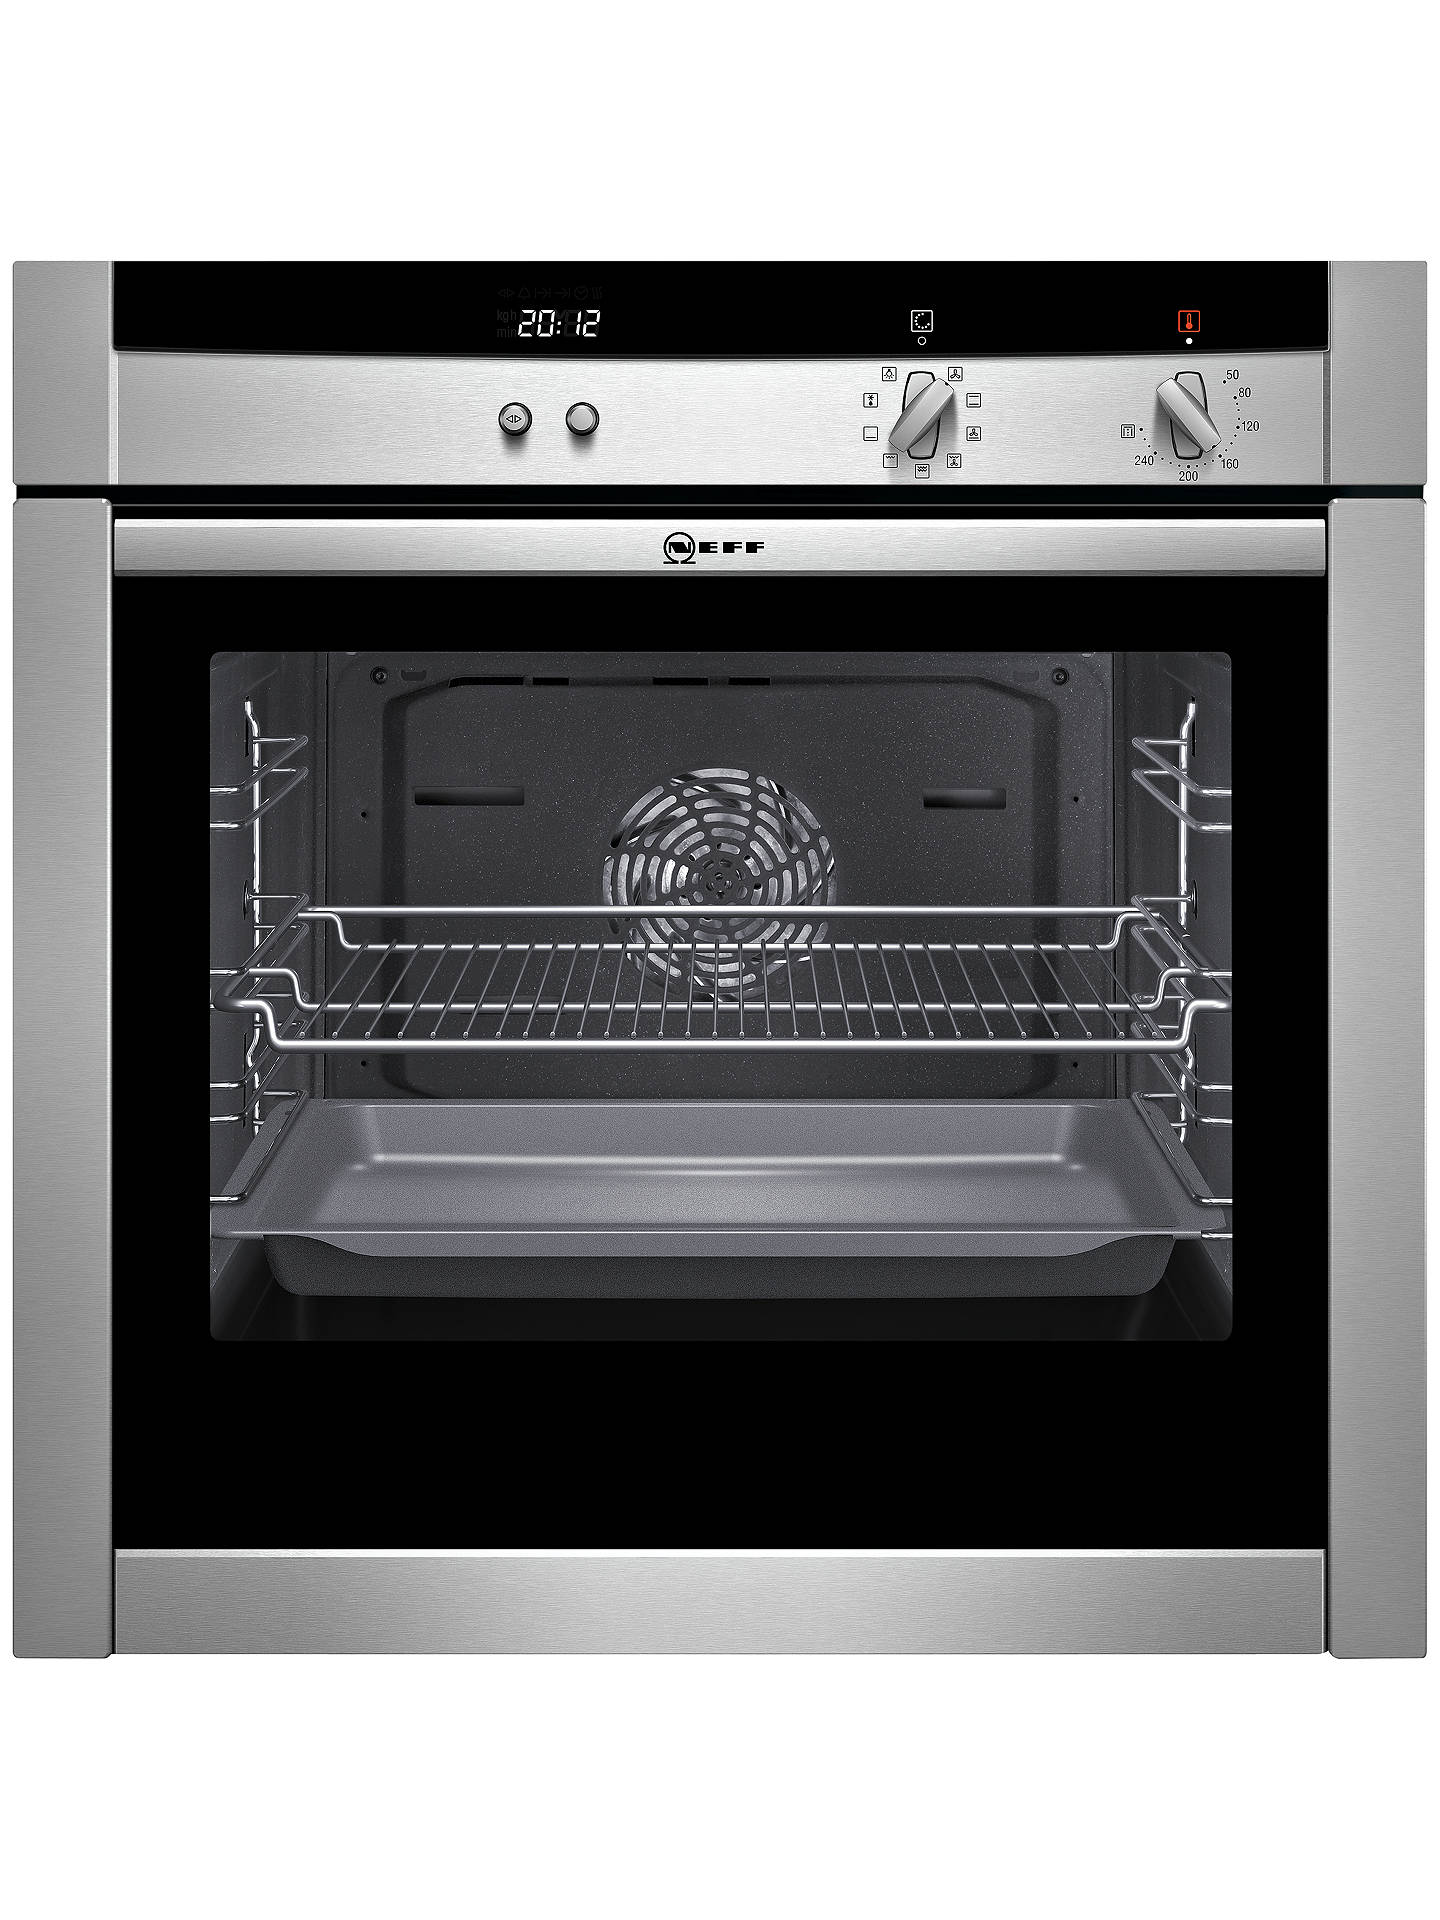 Neff B45m52n3gb Slide And Hide Single Electric Oven Stainless Steel